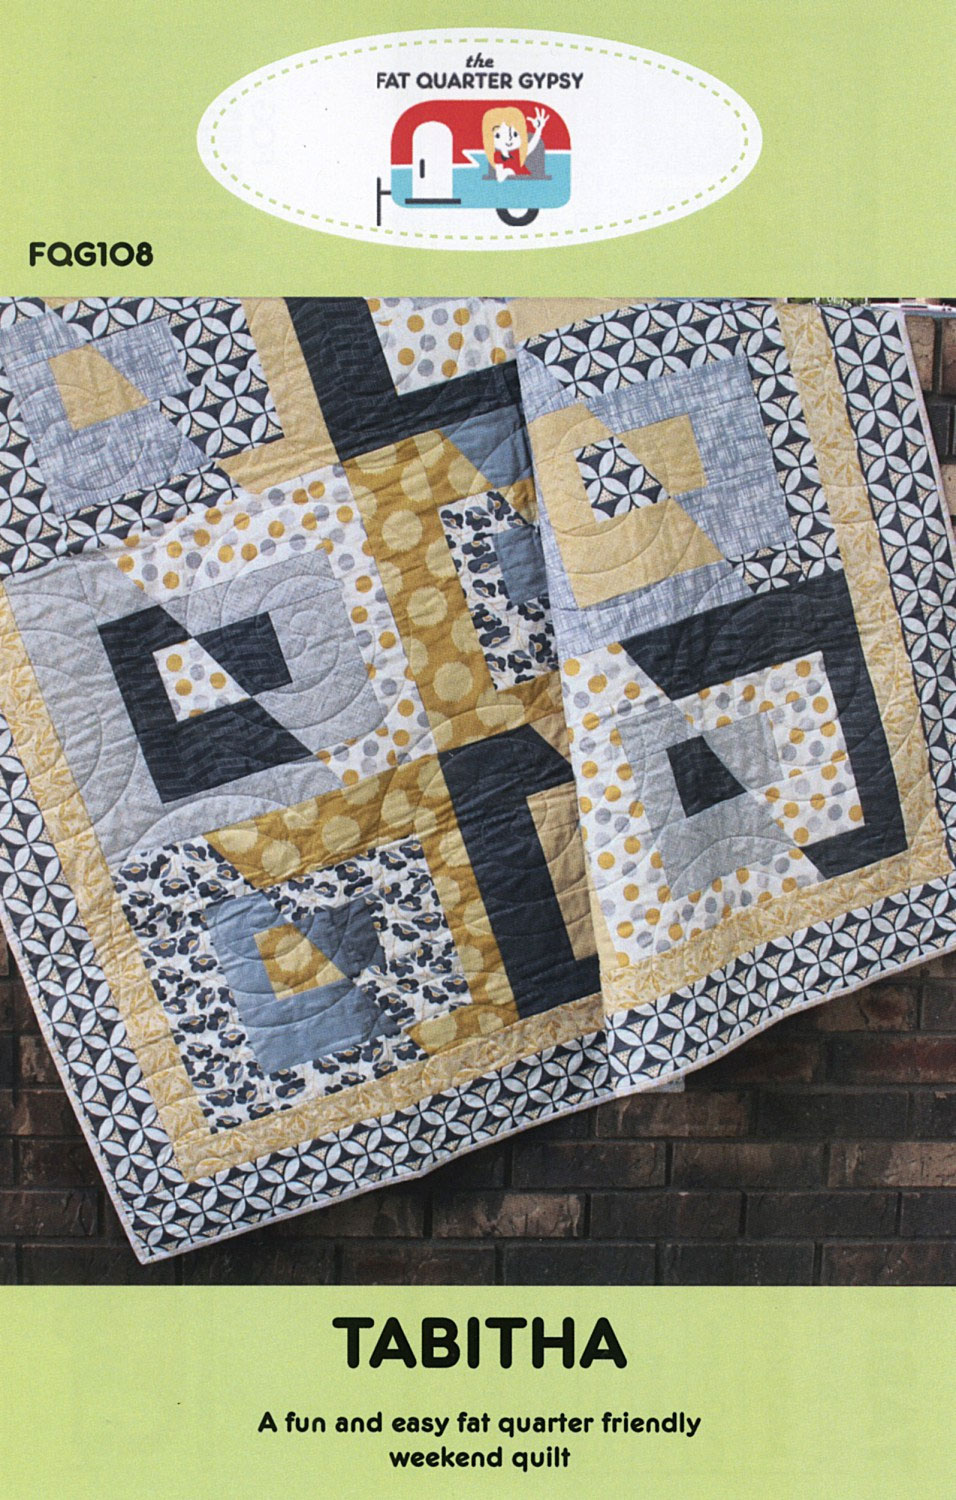 Tabitha quilt sewing pattern by the fat quarter gypsy tabitha quilt sewing pattern fat quarter gypsy front jeuxipadfo Gallery